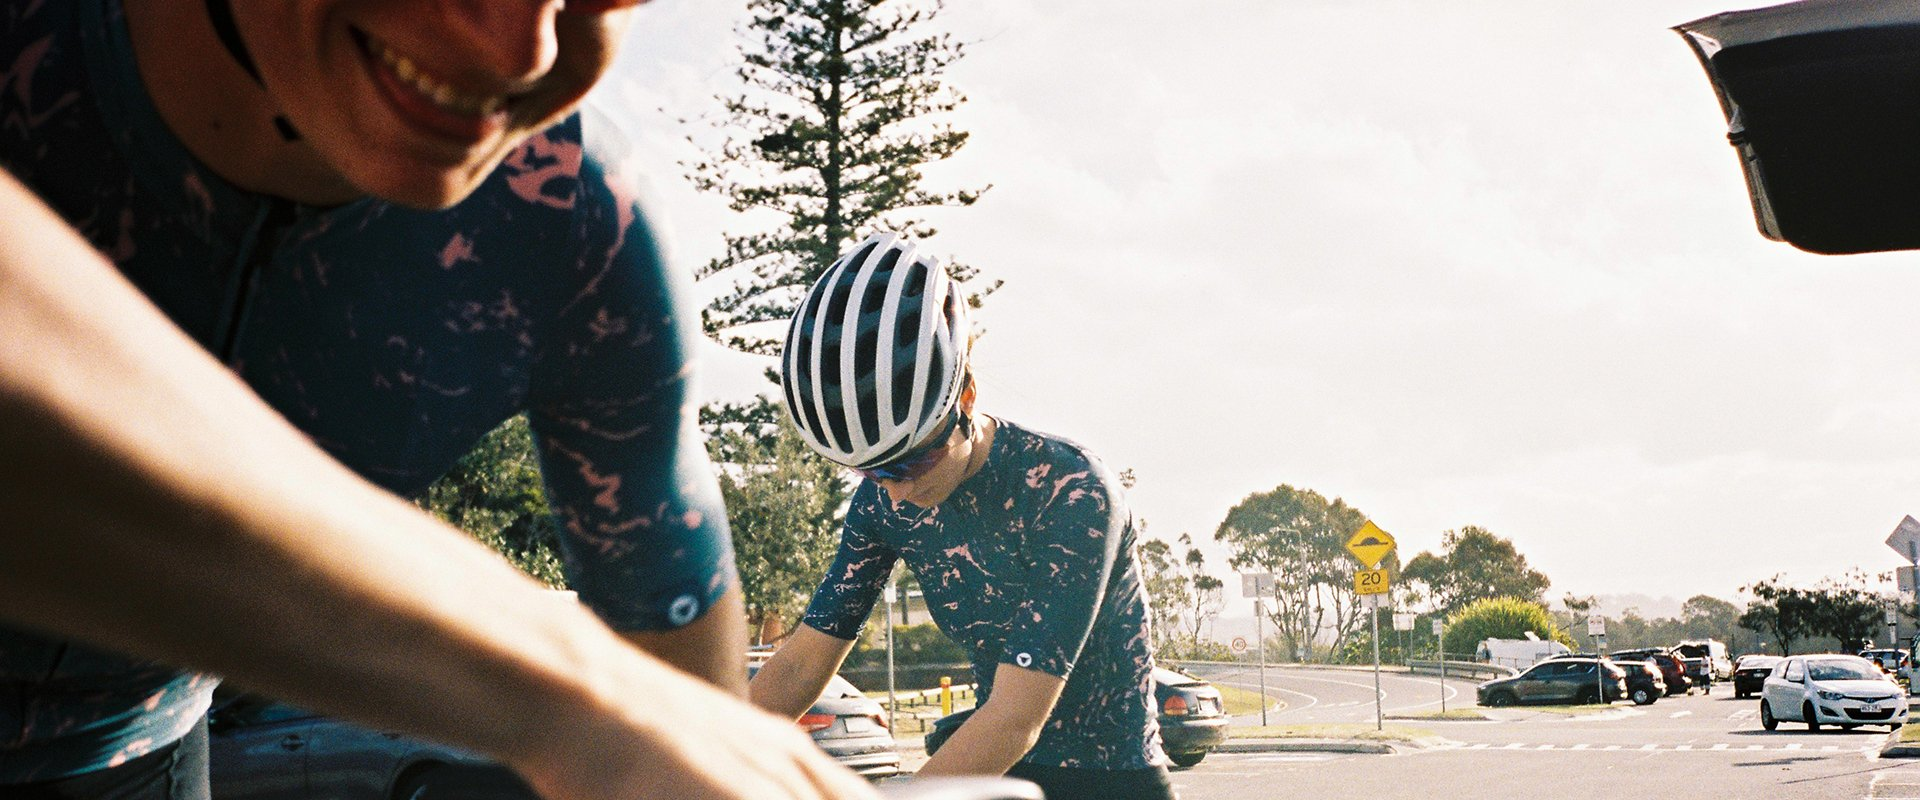 Black Sheep Cycling Essentials Team サイクルジャージ - Slate Marble | CYCLISM